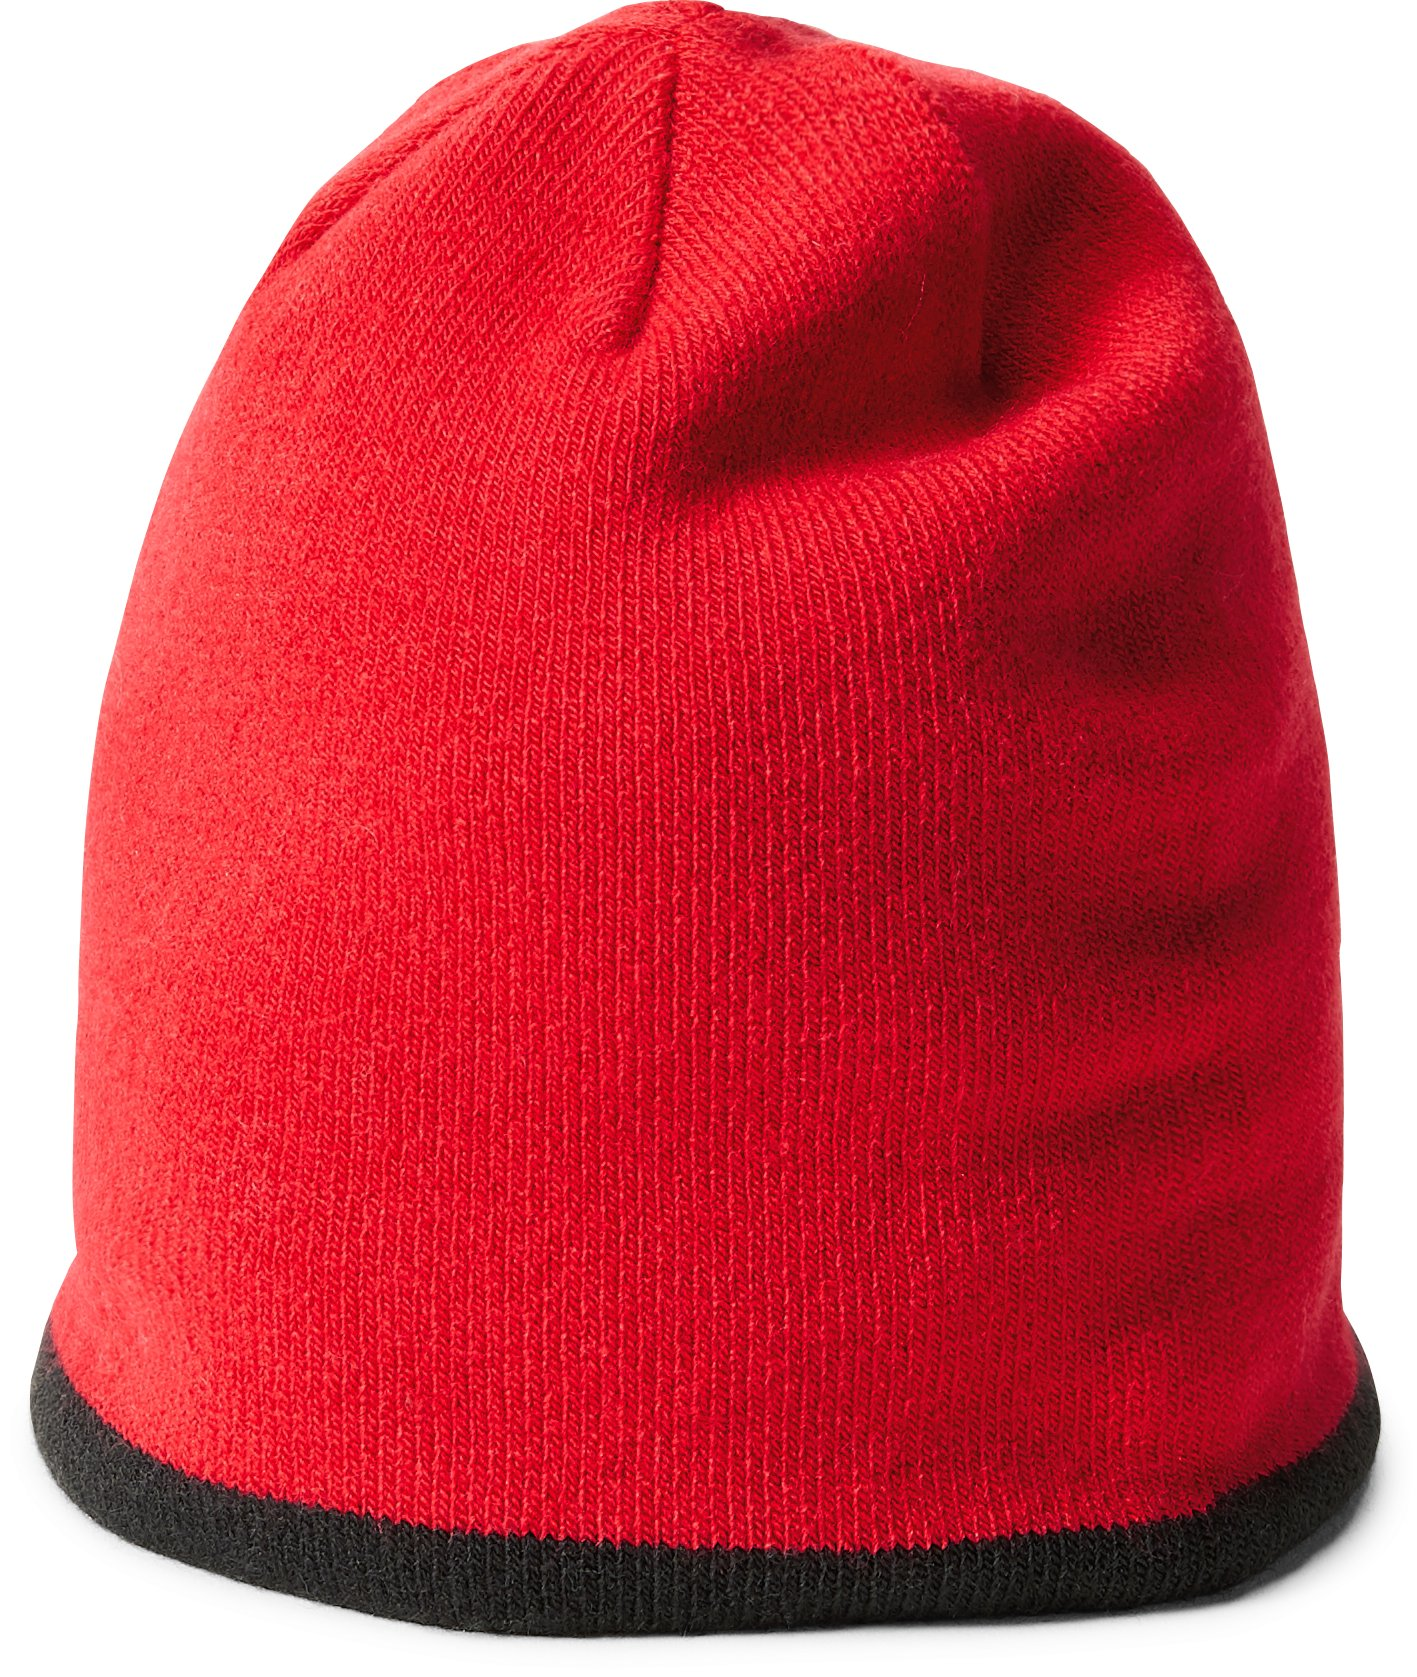 Boys' Toddler UA Double Layer Reversible Beanie, Red,